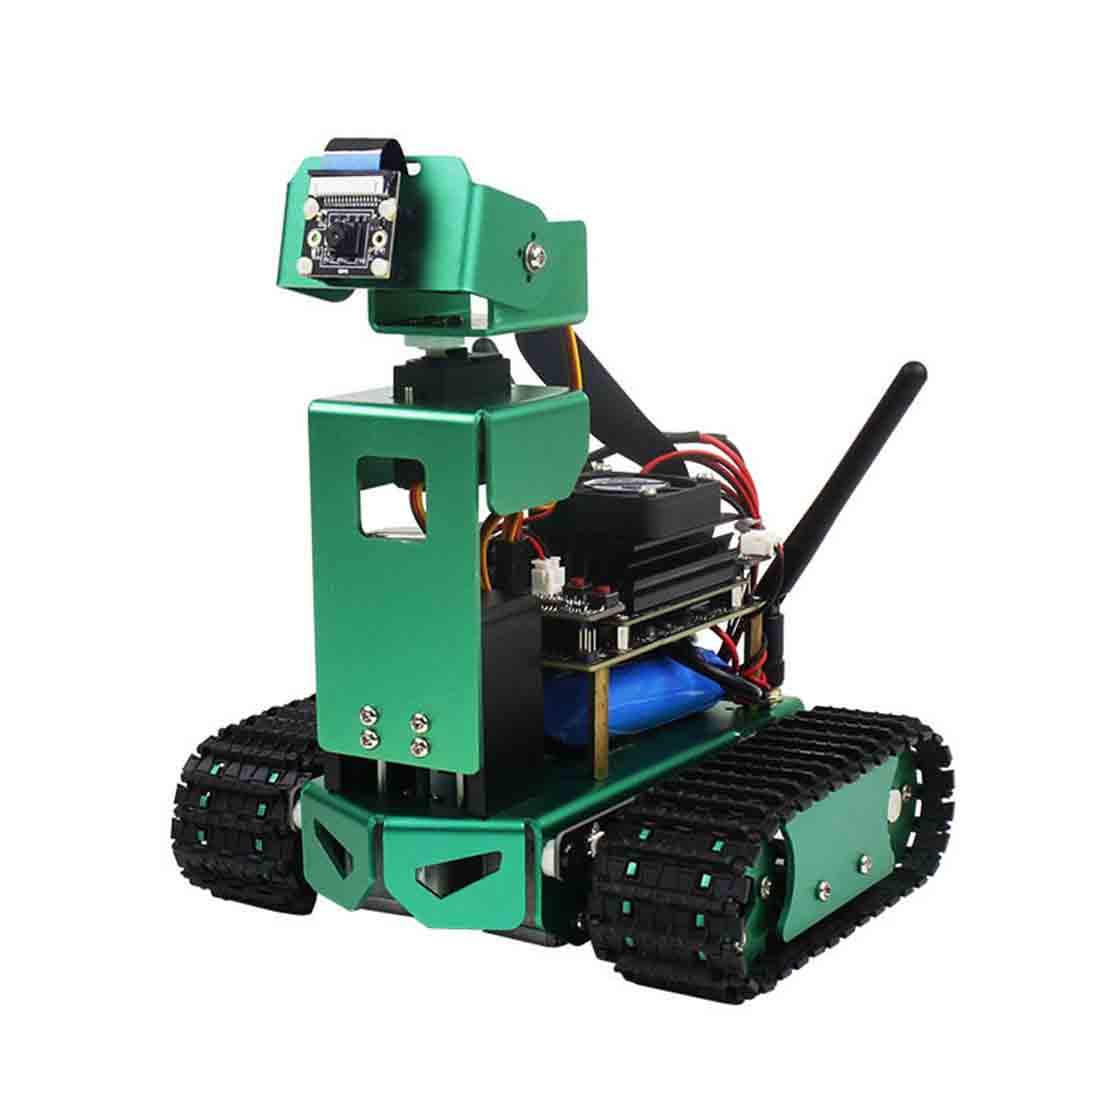 Artificial Intelligence Car DIY 2DOF Robot Car Kit With/Without Development Board For Jetson Nano (Fixed Height) Educational Toy